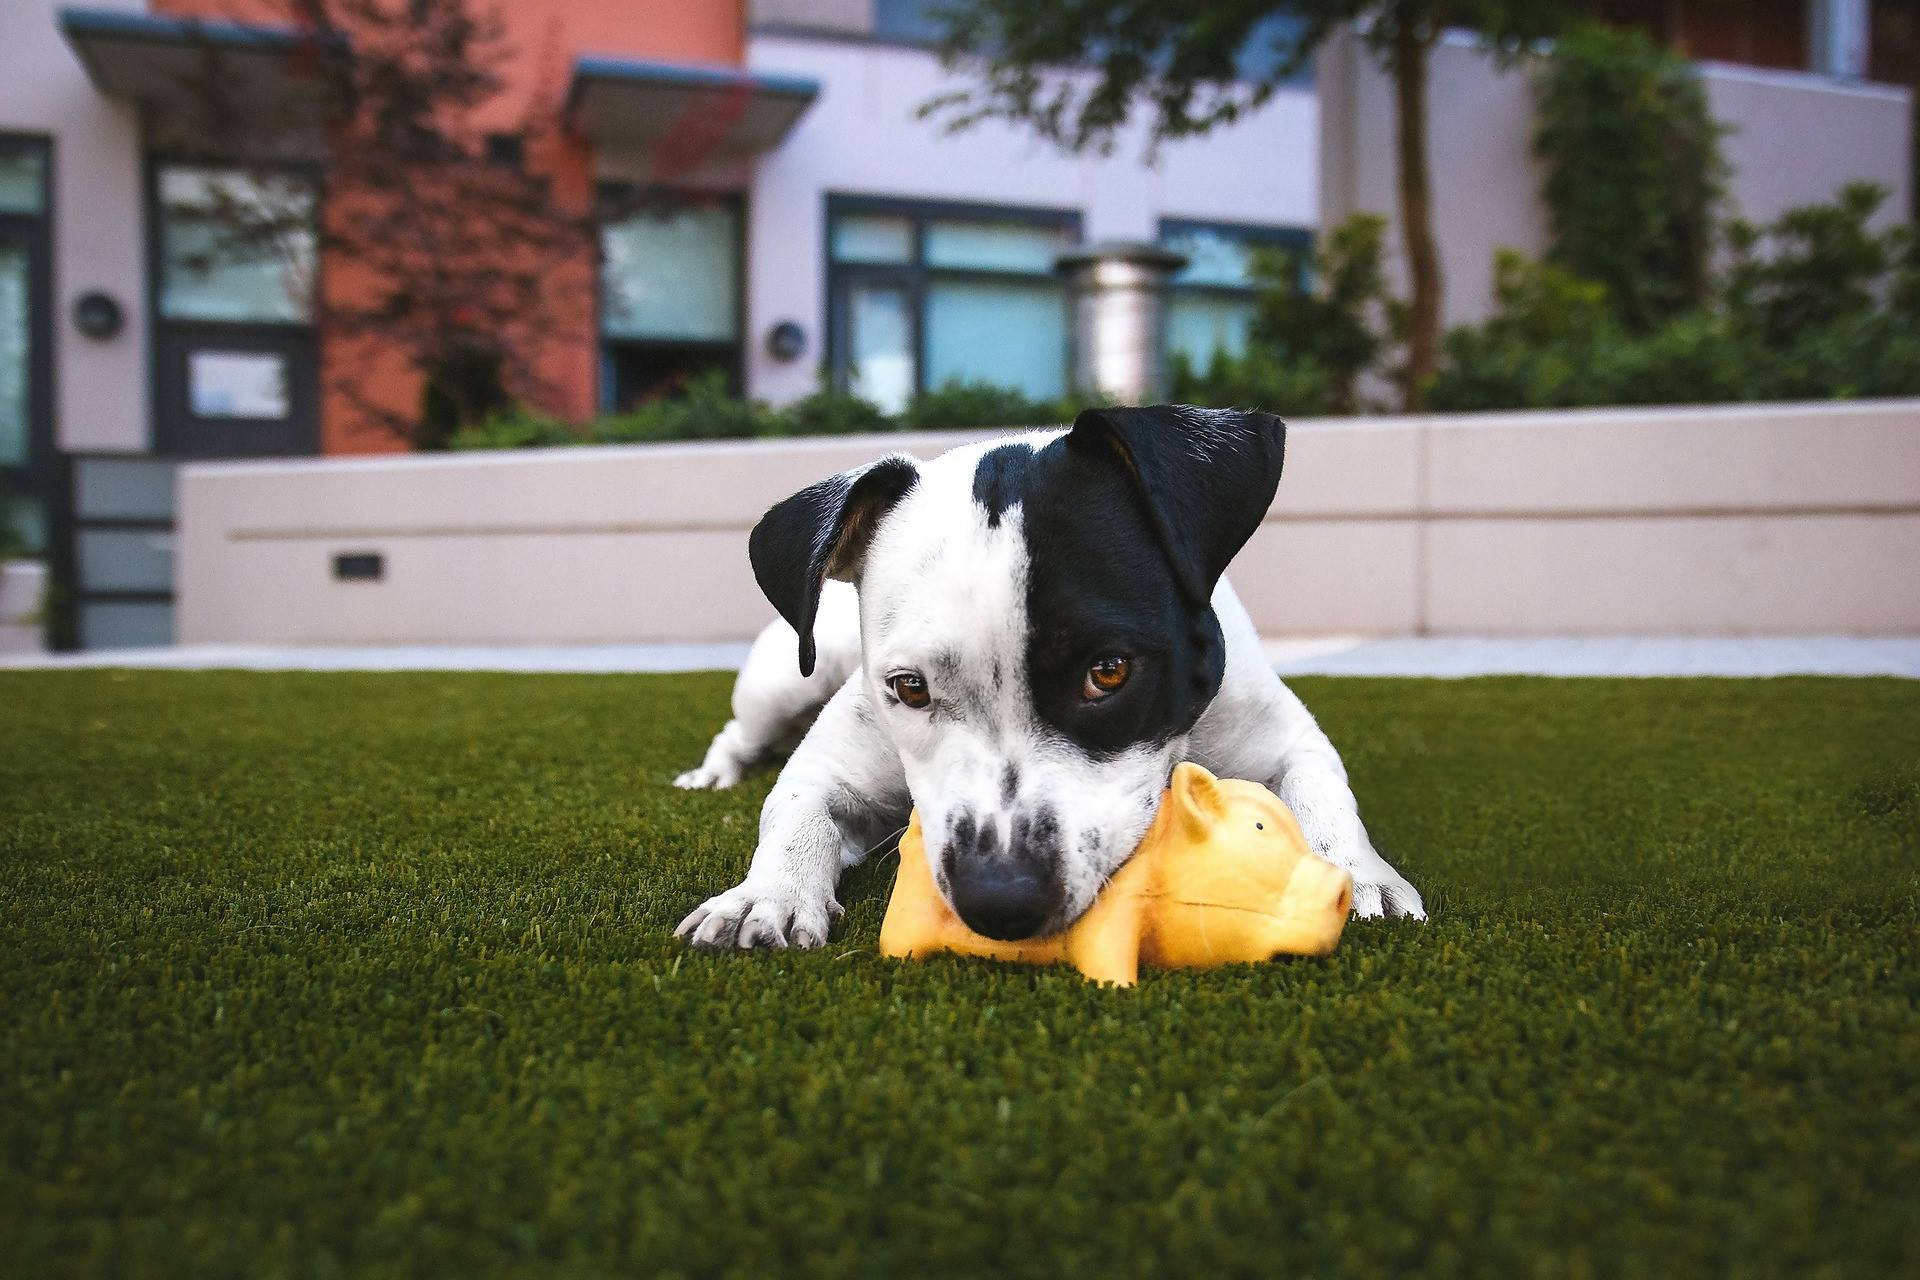 A Jack Russell Terrier puppy playing with a squeaky rubber pig